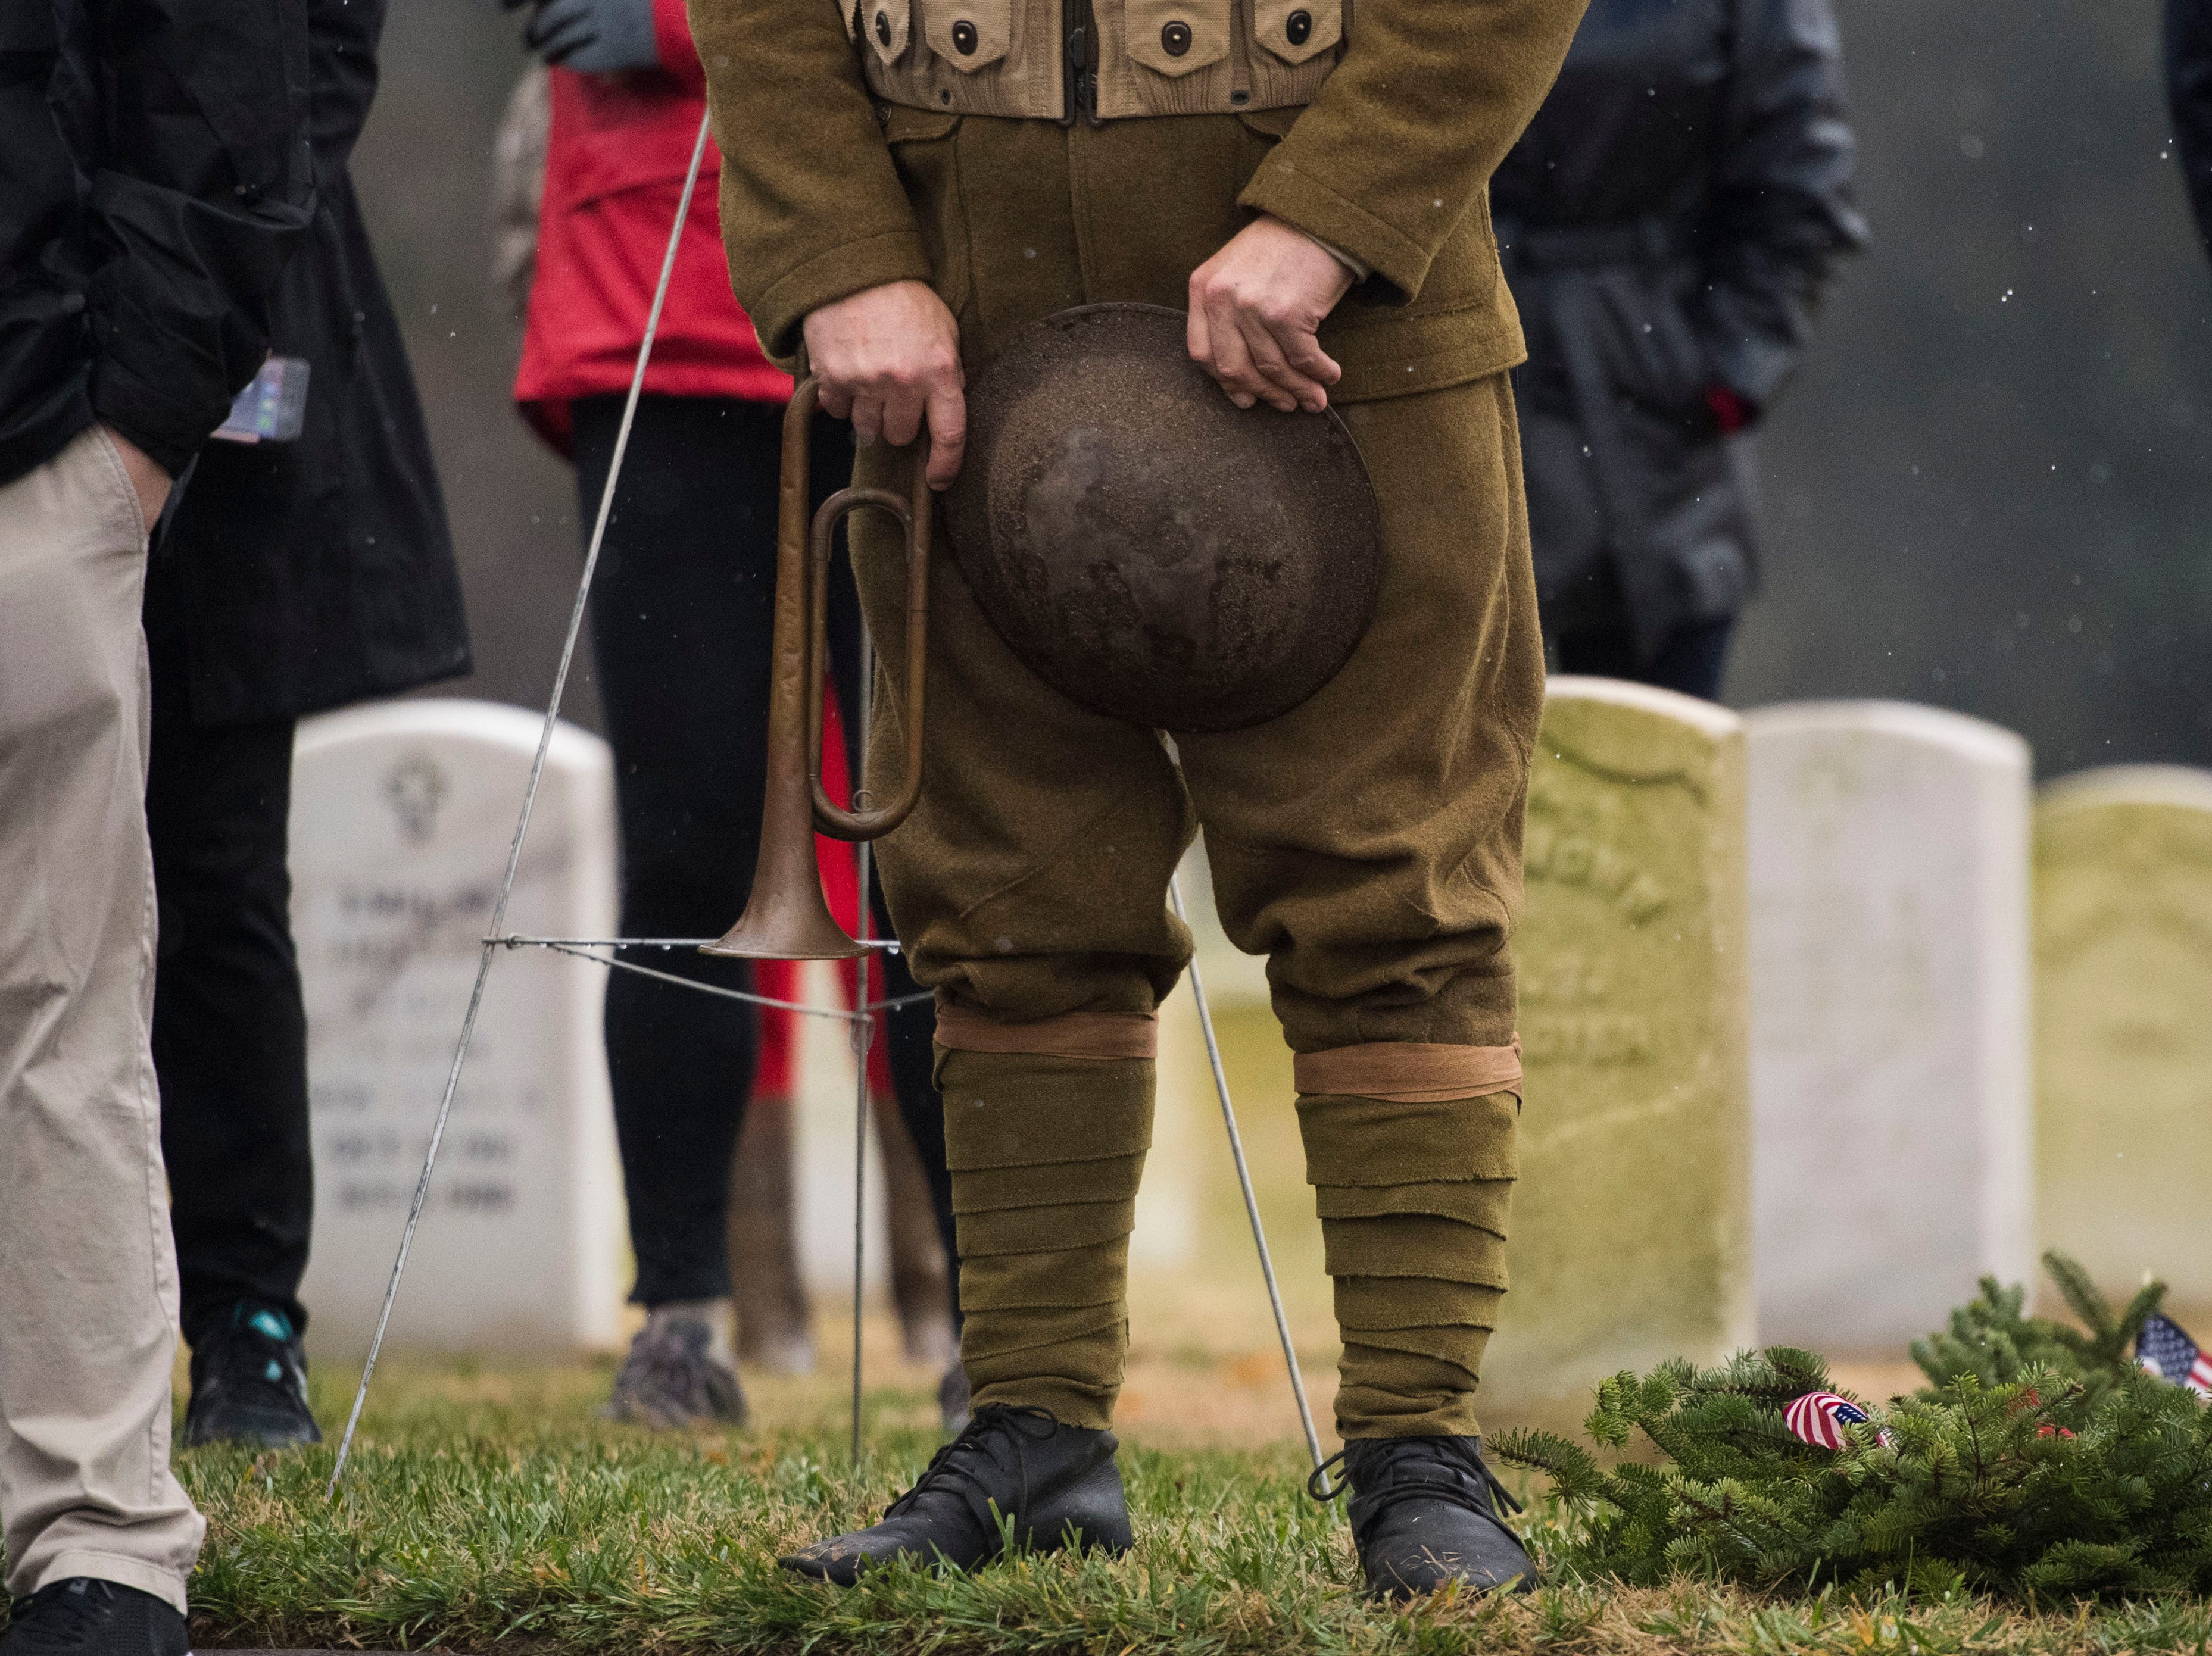 Reenactor William Beard holds his hat and horn during a Wreaths Across America ceremony at Knoxville National Cemetery north of downtown Knoxville Saturday, Dec. 15, 2018. Evergreen wreaths were placed on veteran headstones.